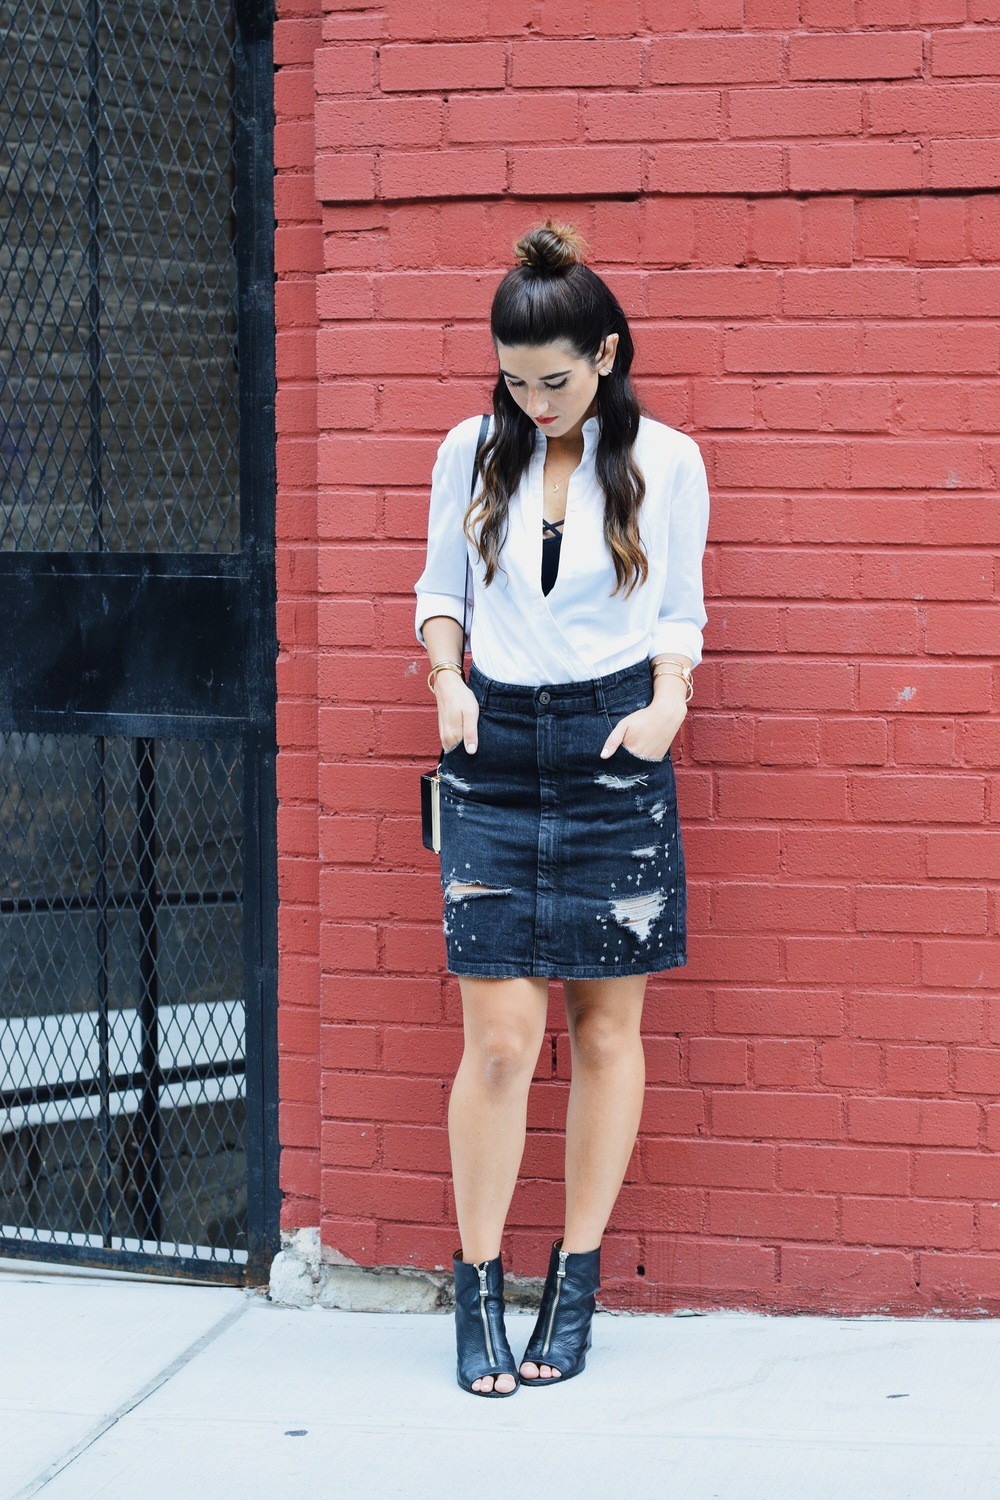 Coco & Marie Moon Necklace Giveaway Louboutins & Love Fashion Blog Esther Santer NYC Street Style Blogger Lifestyle Topknot Bun Ripped Jean Skirt Denim Zara Button Down Zara Black Clutch Bag Bralette Nordstrom Booties Girl Women Gold Jewelry Outfit.JPG